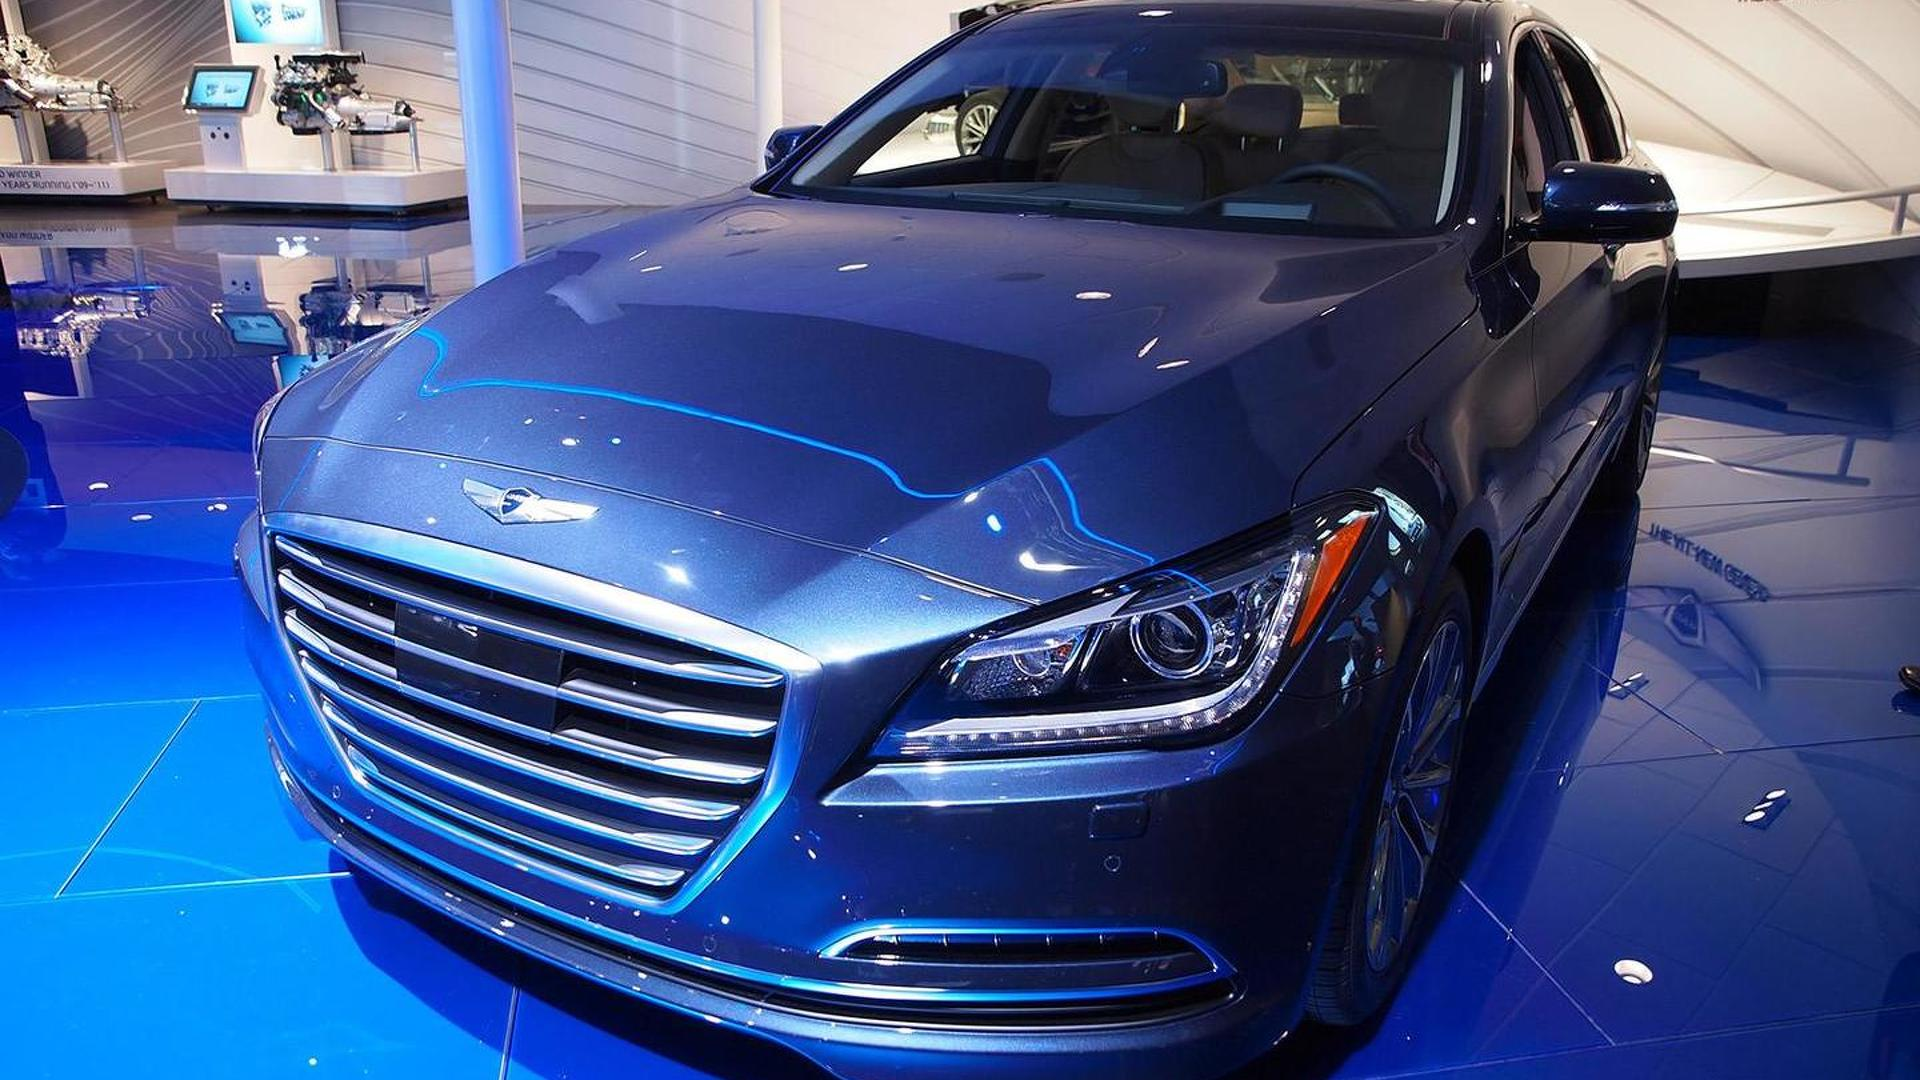 2015 Hyundai Genesis introduced in Detroit, expected to start below 40,000 USD